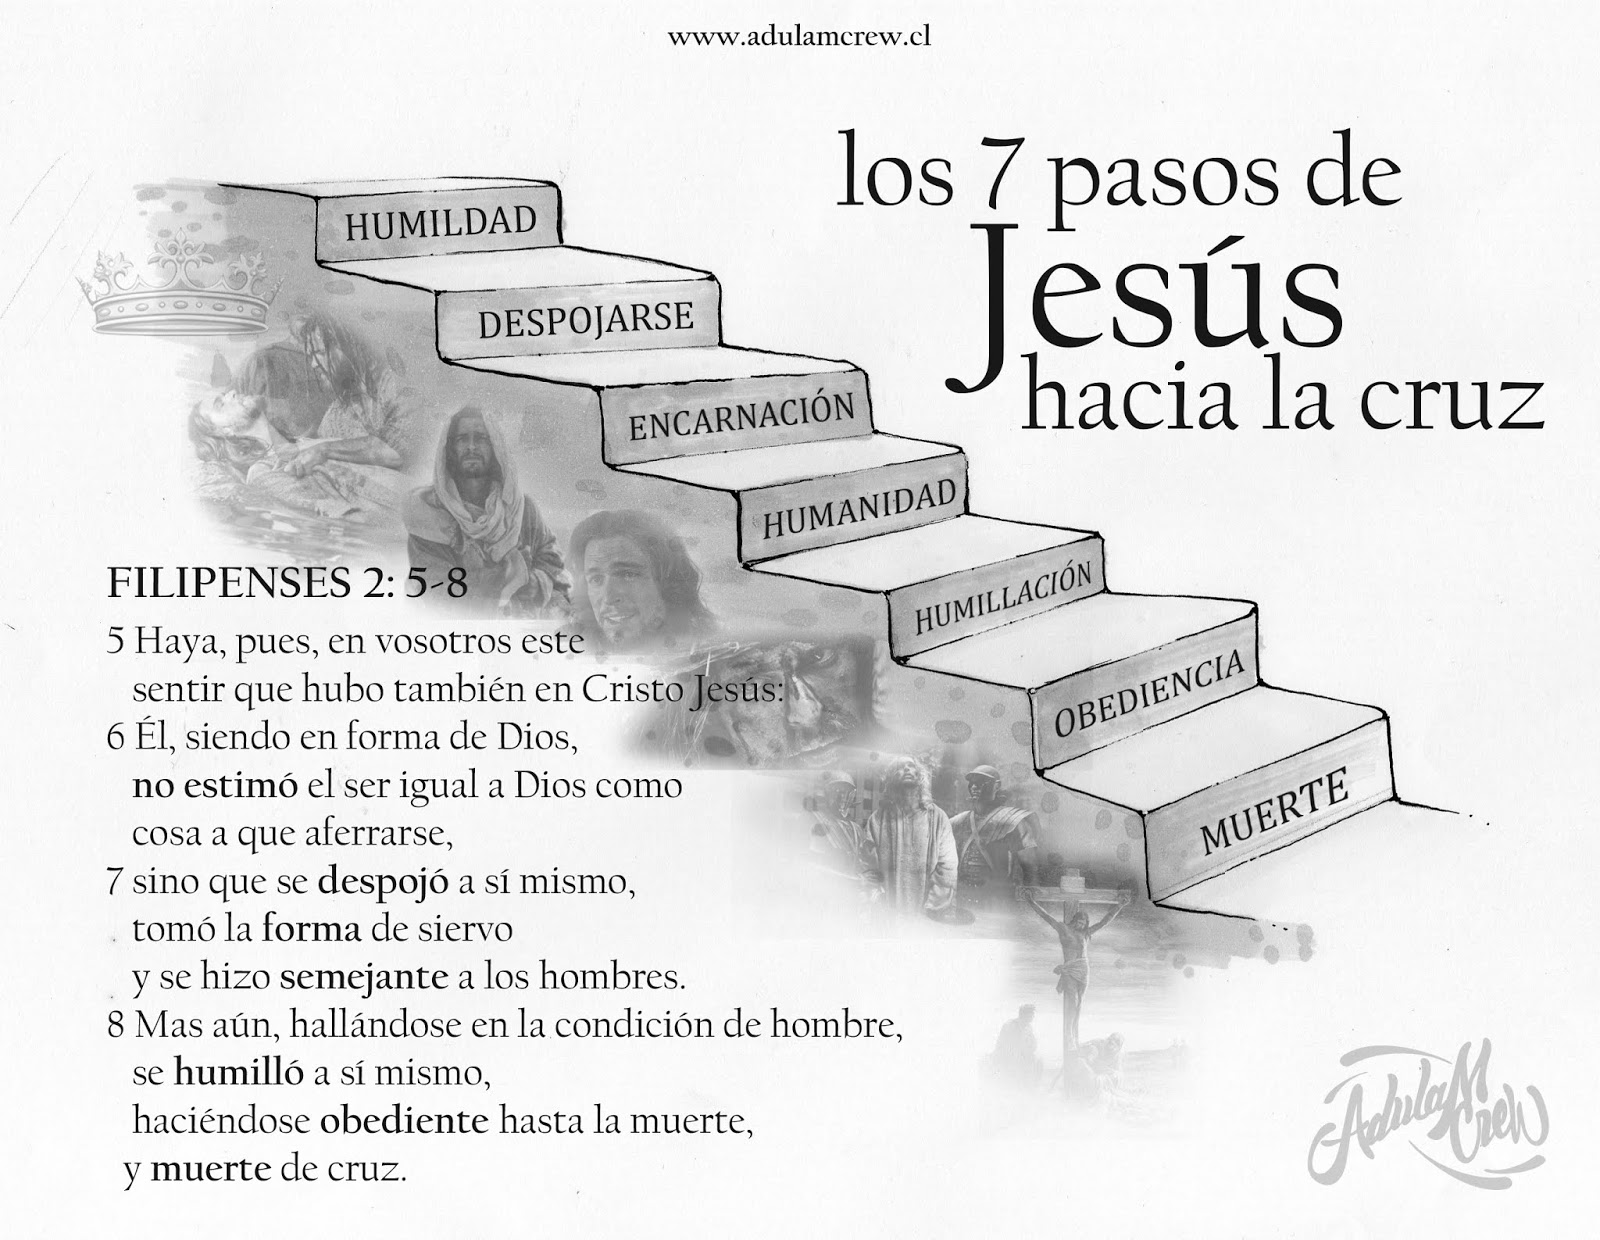 los 7 pasos de Jesús hacia la cruz - image 7%2BPASOS on http://adulamcrew.cl